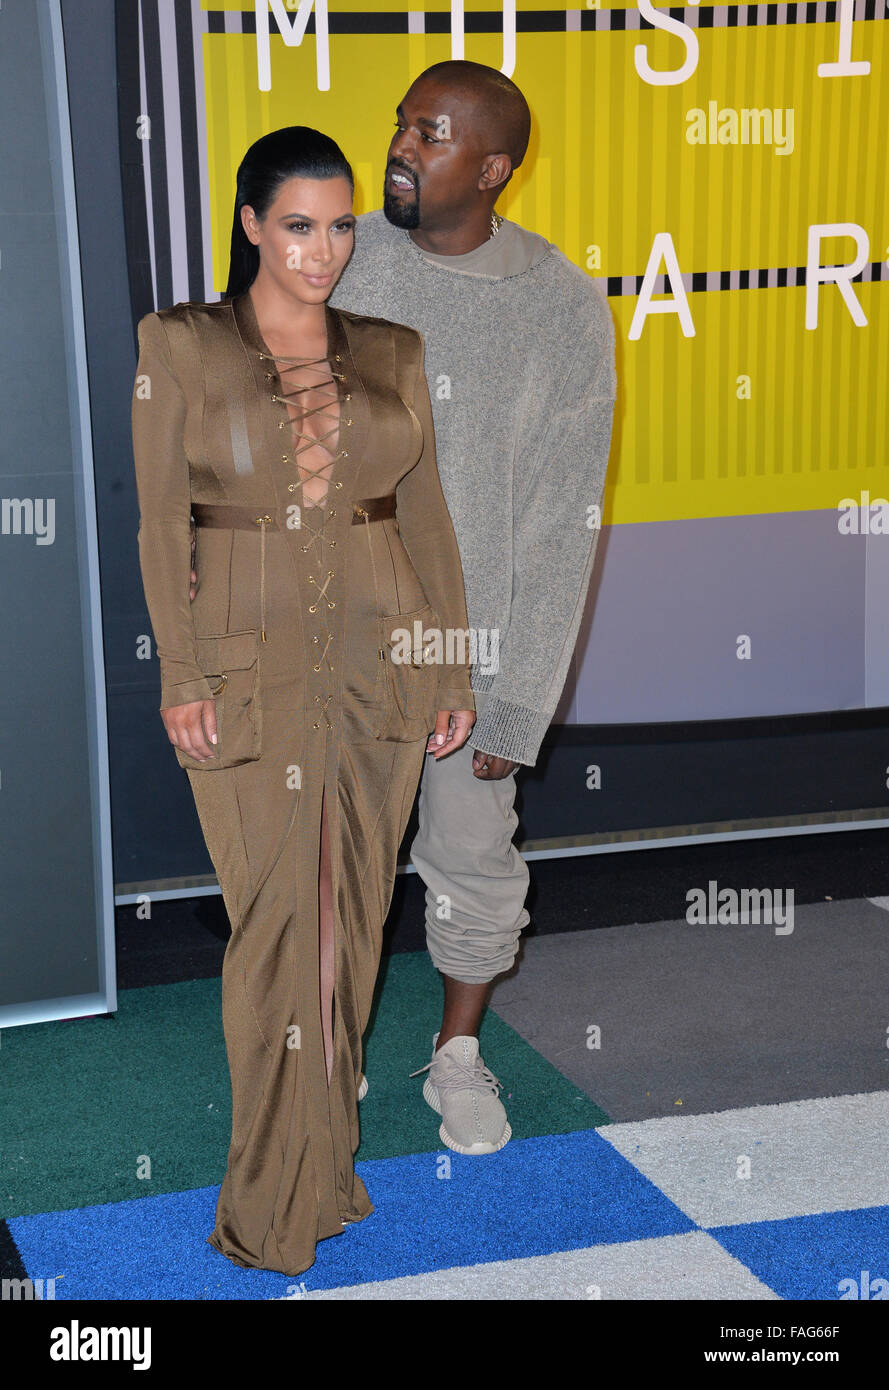 LOS ANGELES, CA - AUGUST 30, 2015: Kim Kardashian & Kanye West at the 2015 MTV Video Music Awards at the Microsoft - Stock Image